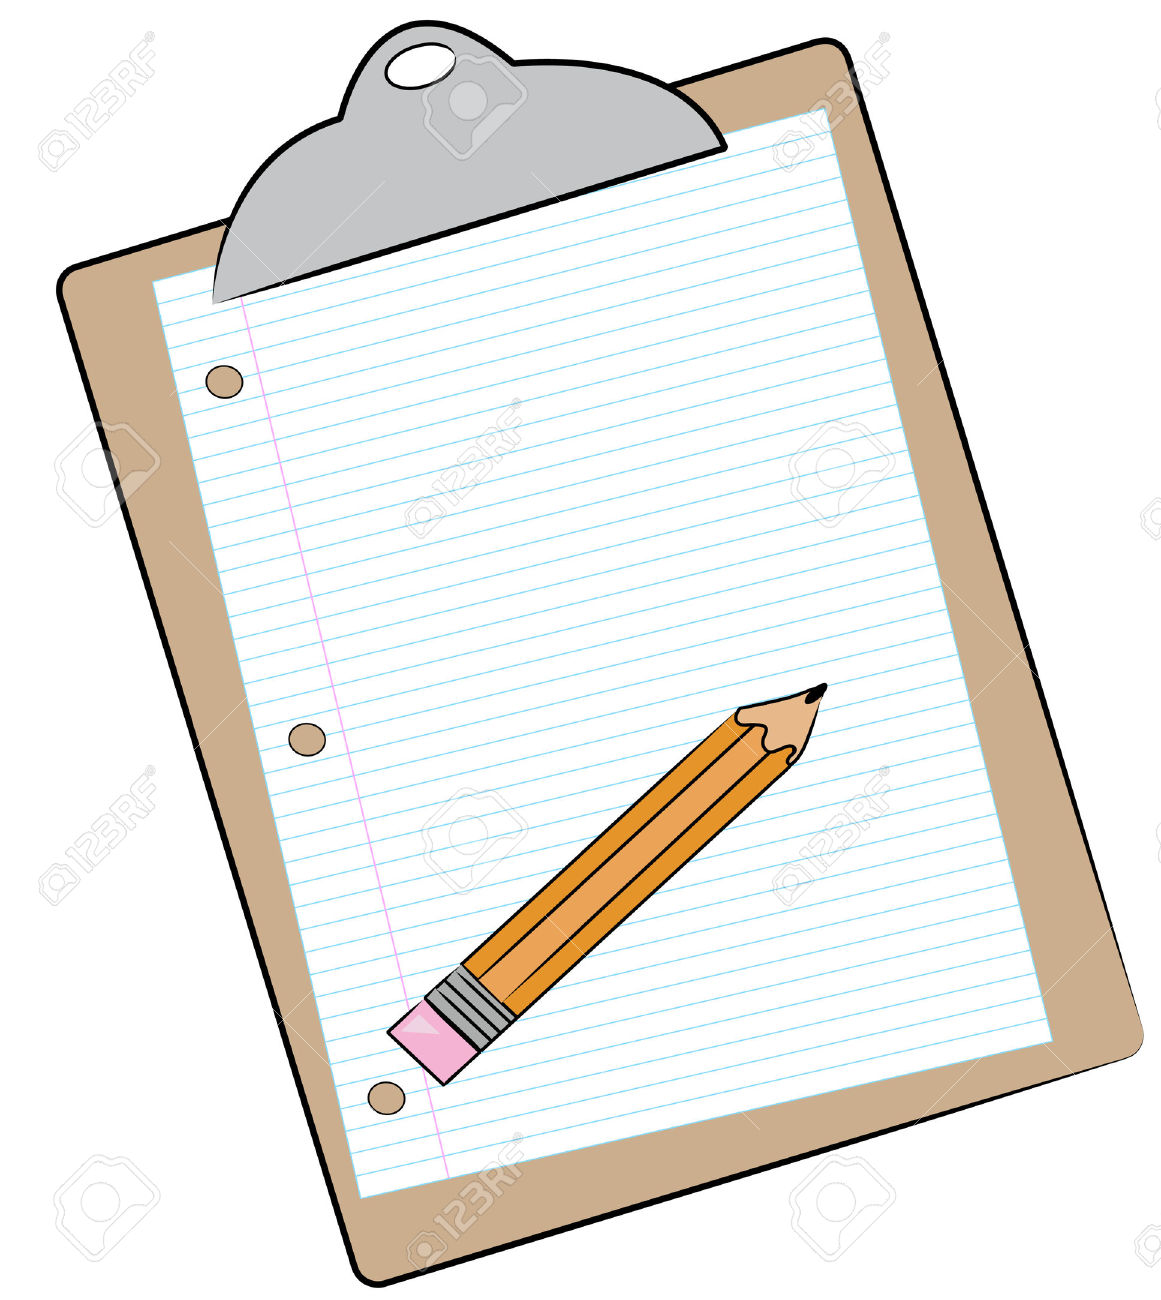 1161x1300 Clipboard And Pencil Clipart Amp Clipboard And Pencil Clip Art